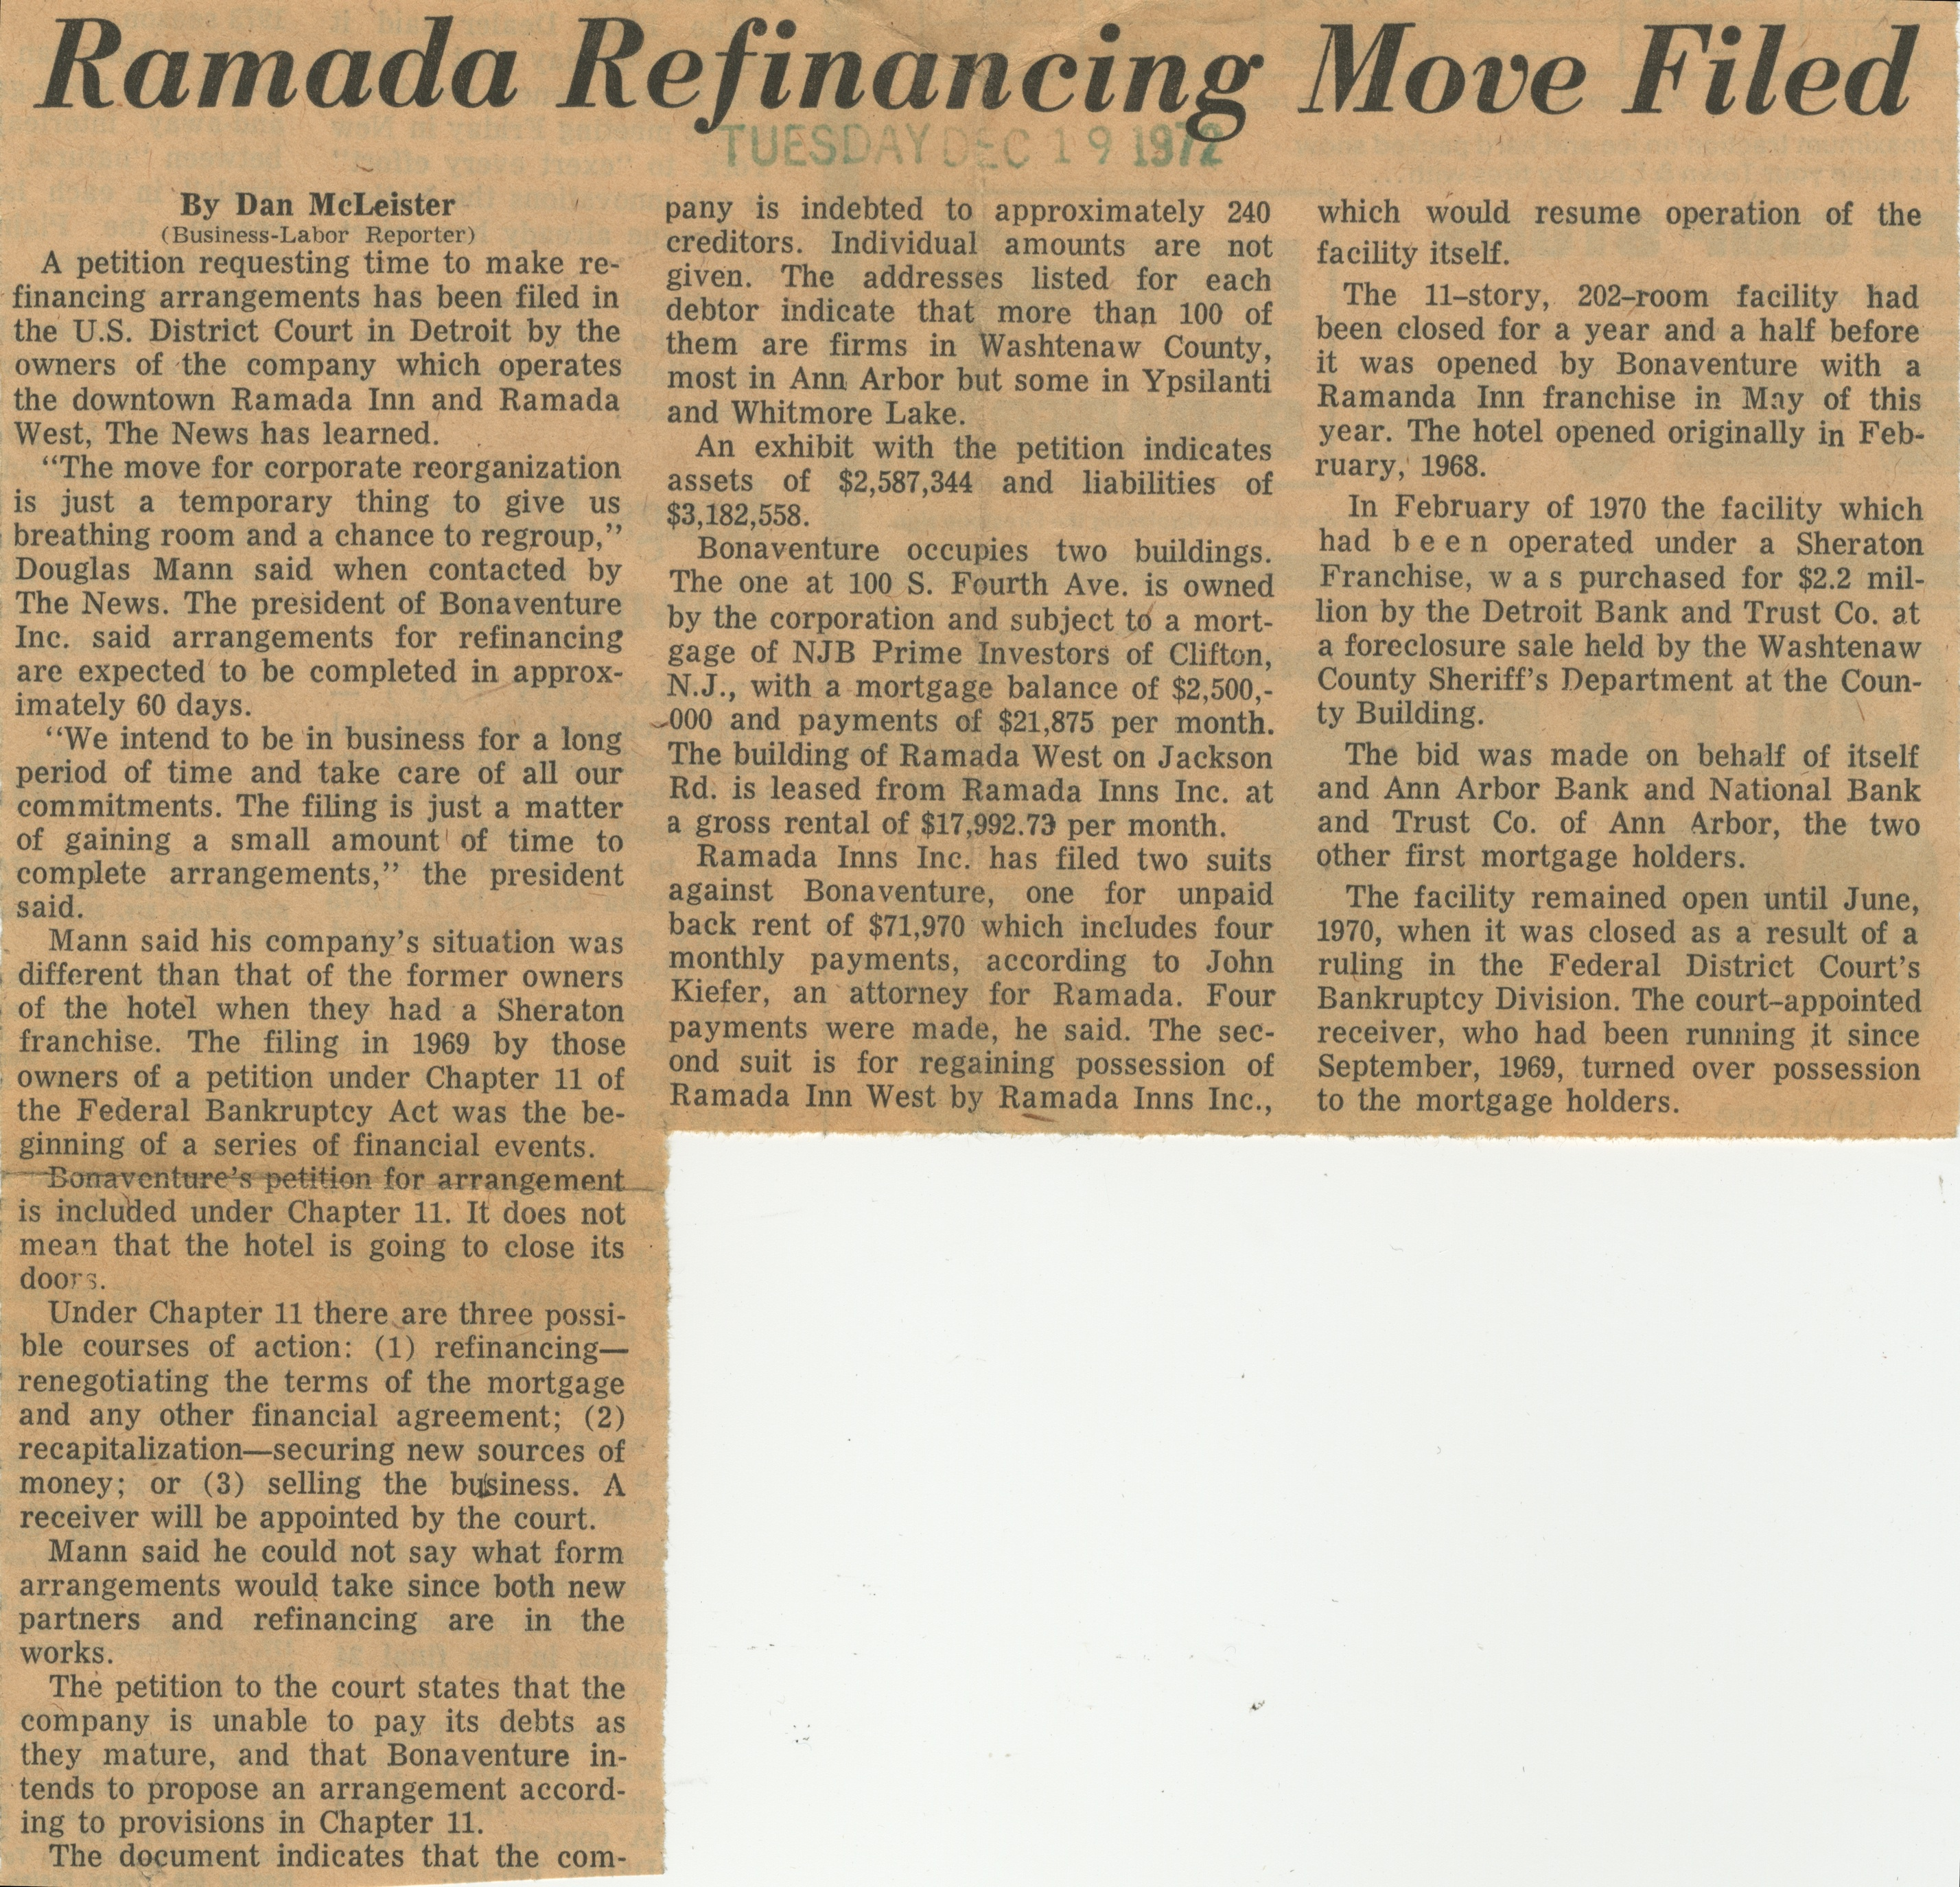 Ramada Refinancing Move Filed image